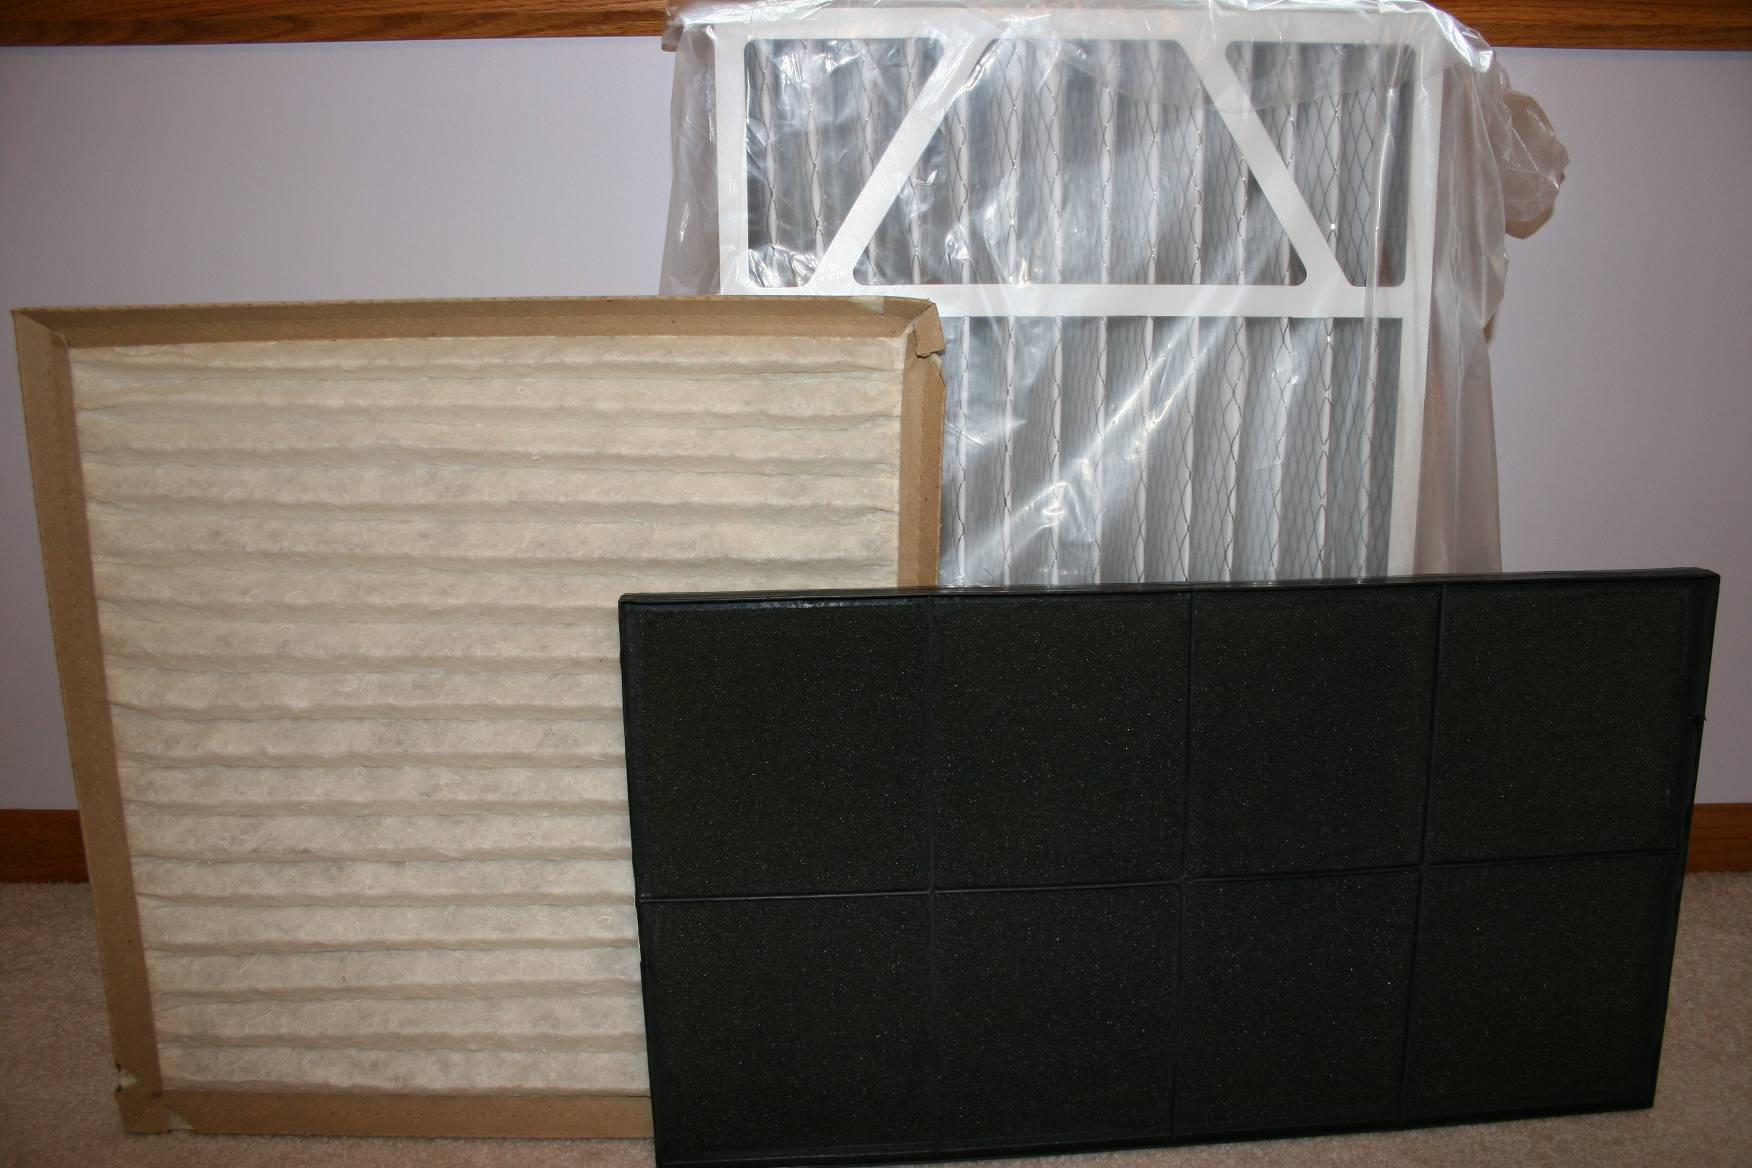 Which air filter would you choose?